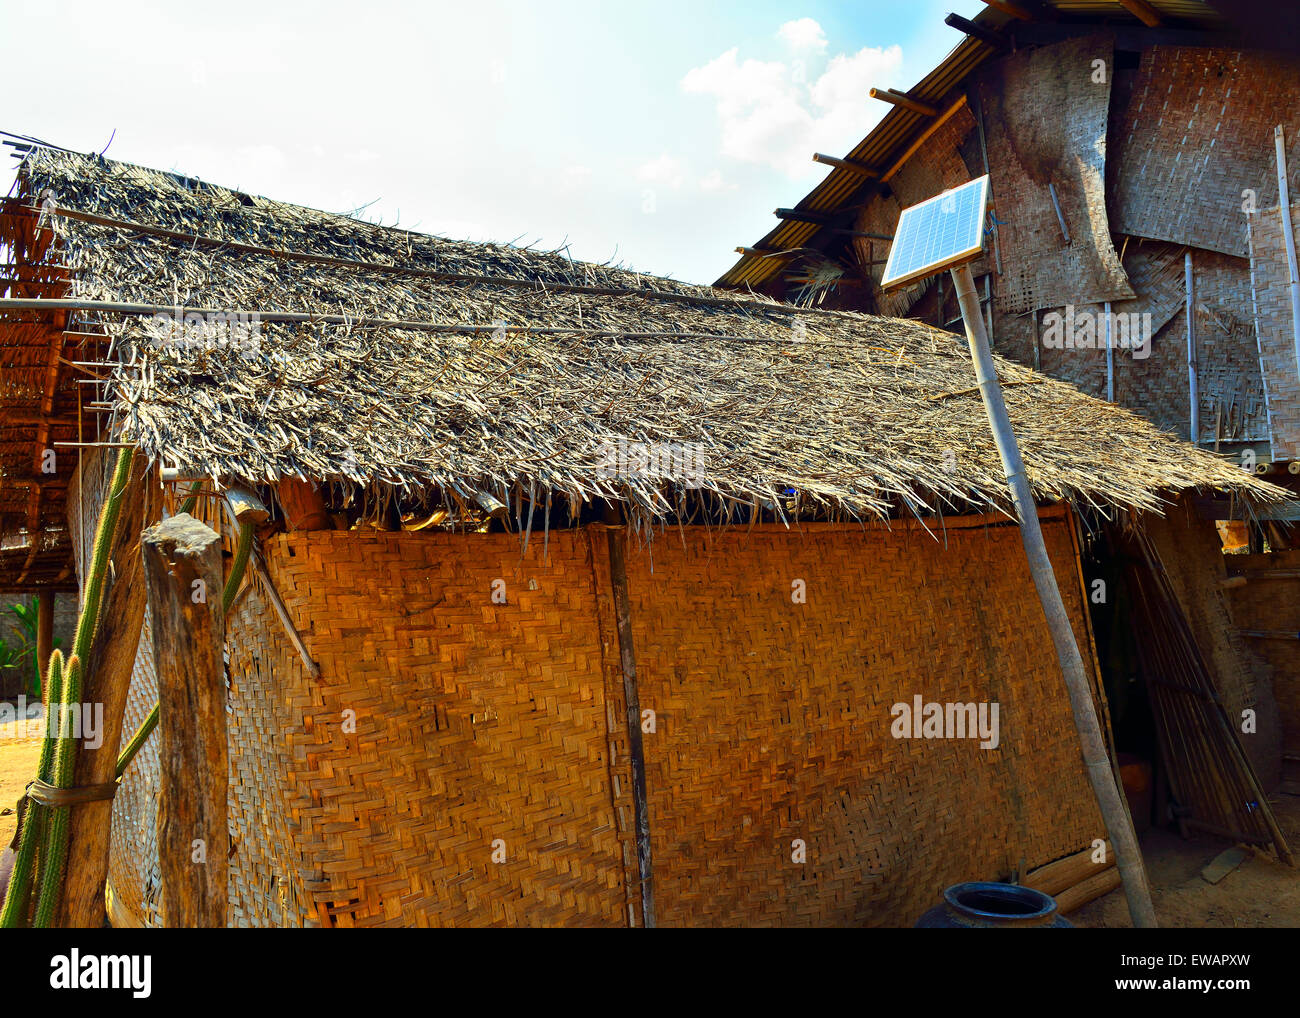 A single solar panel provides basic electricity for dwelling such as for a few lights bulbs only in village on Inle - Stock Image